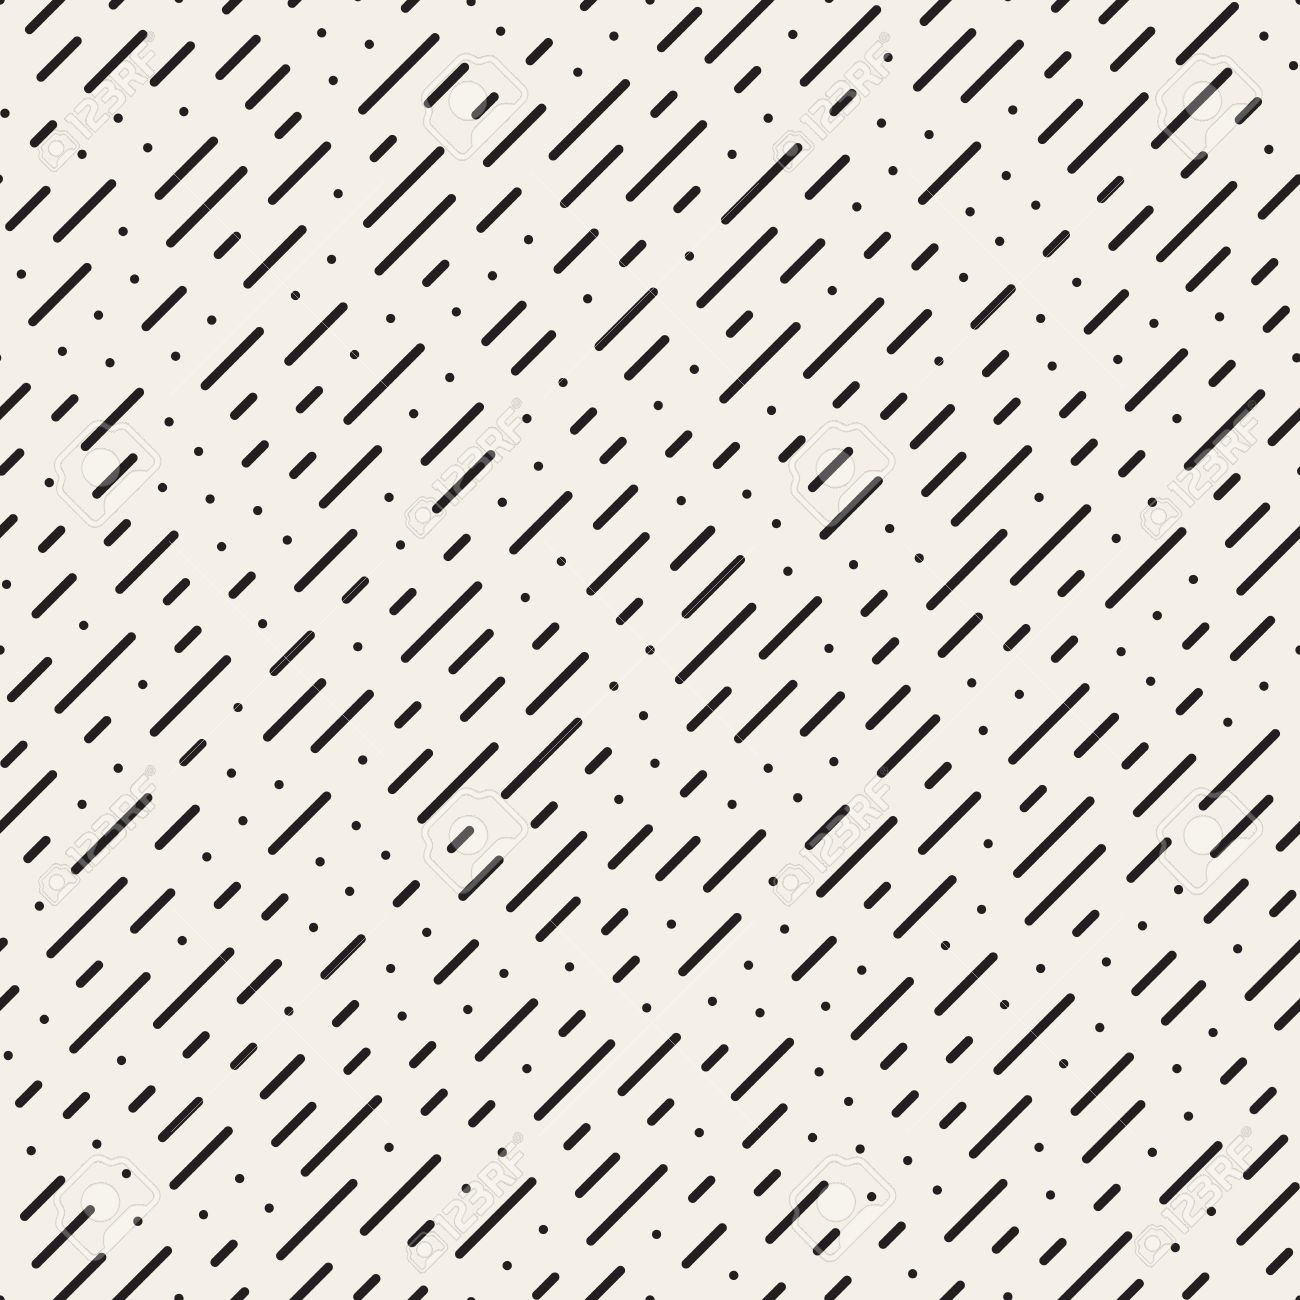 Seamless Black and White Diagonal Dashed Lines Rain Pattern Abstract Background - 56849497